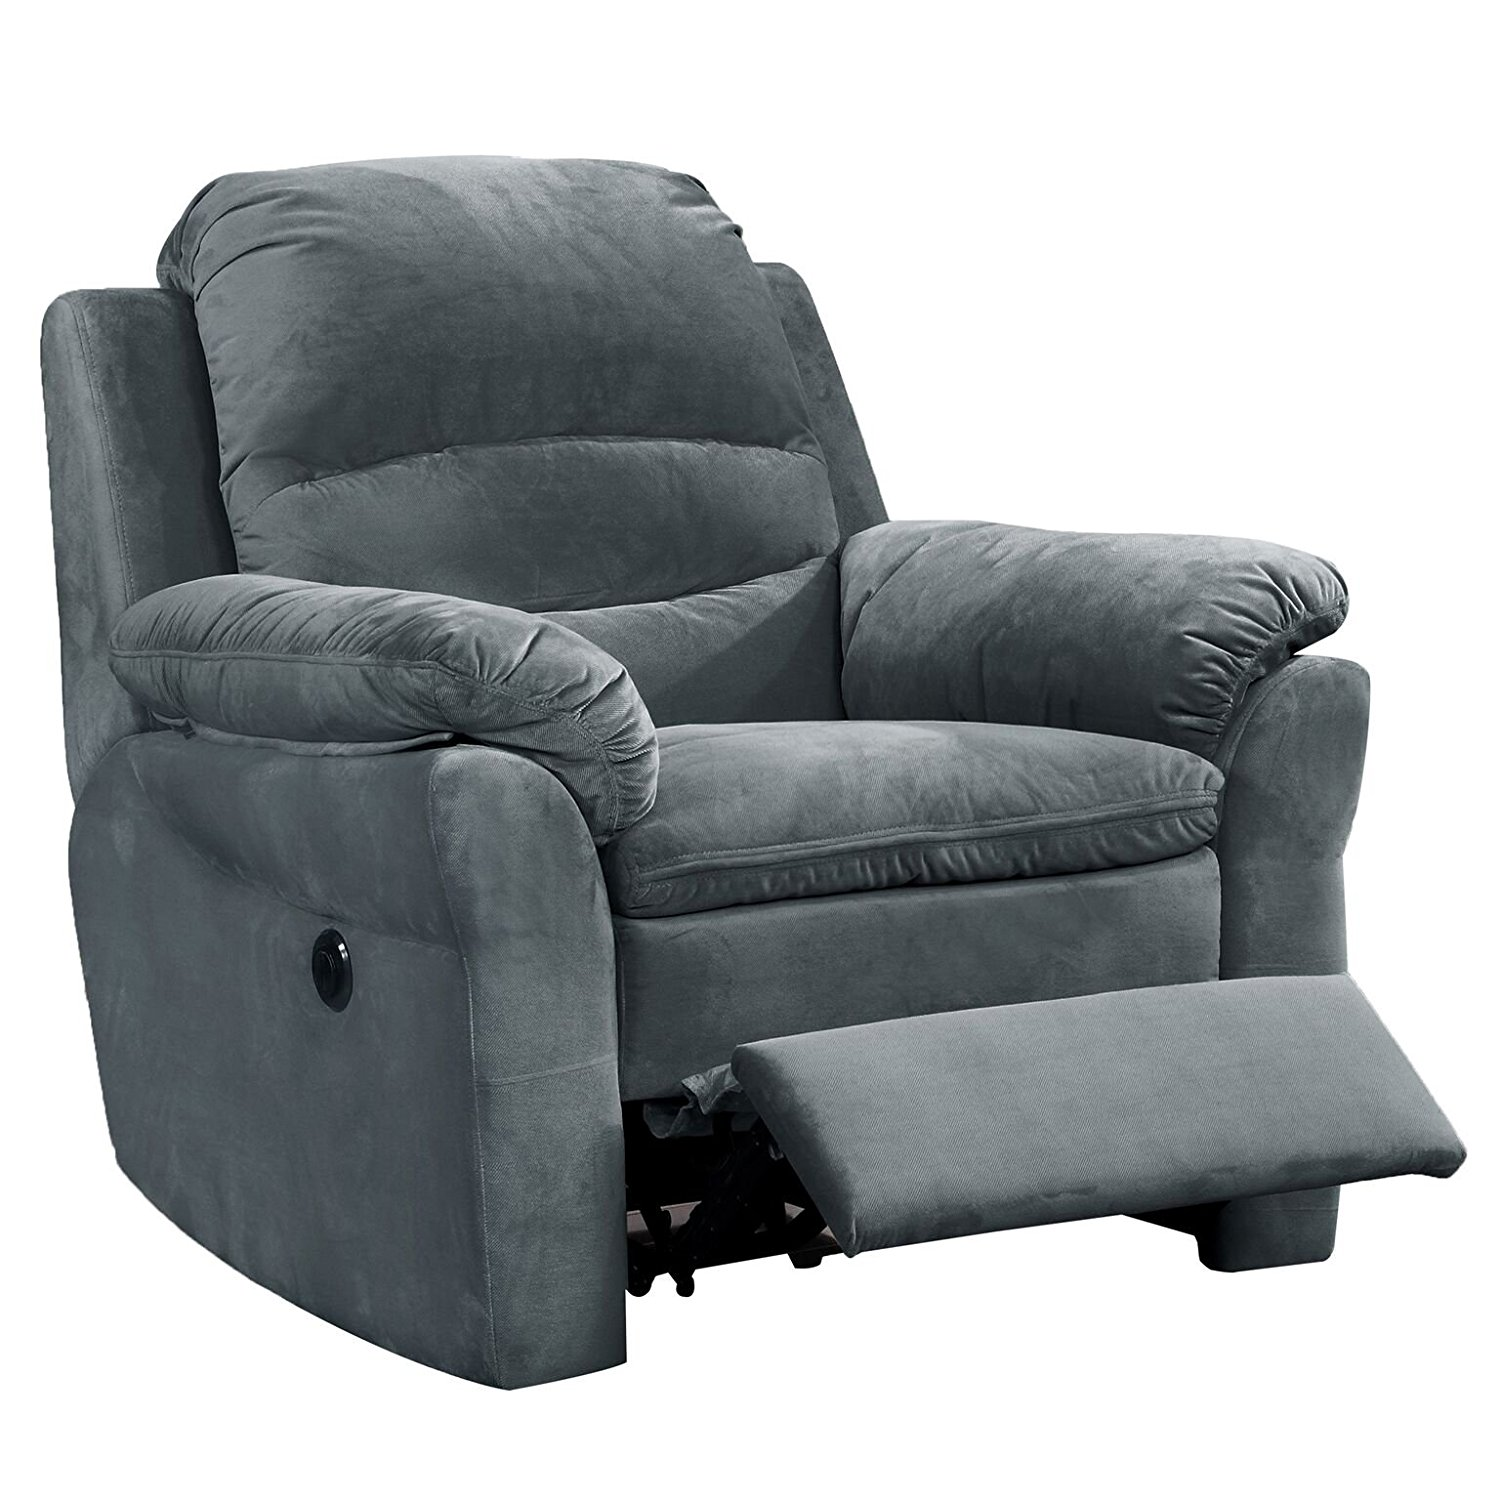 AC Pacific Felix Collection Contemporary Style Fabric Upholstered Living Room Electric Recliner Power Chair, Dark Grey